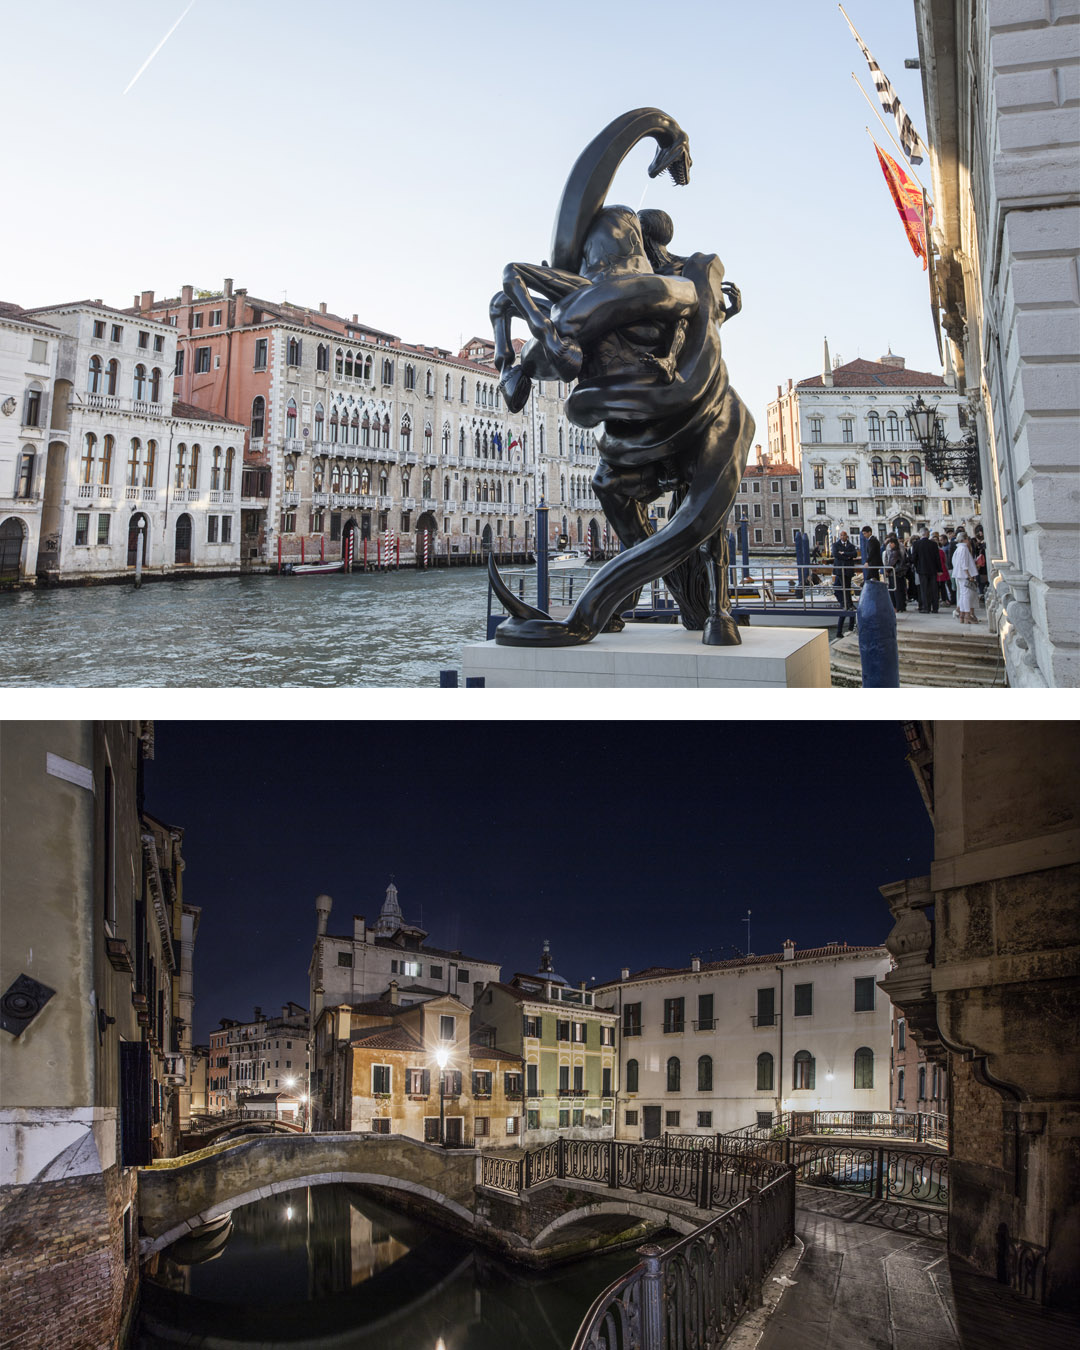 Damien Hirst's private view at the Palazzo Grassi